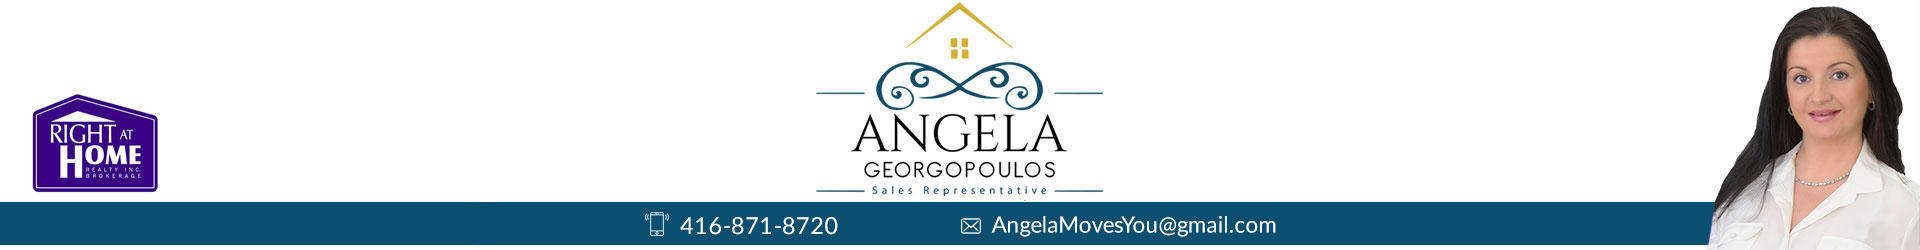 Angela Georgopoulos Real Estate